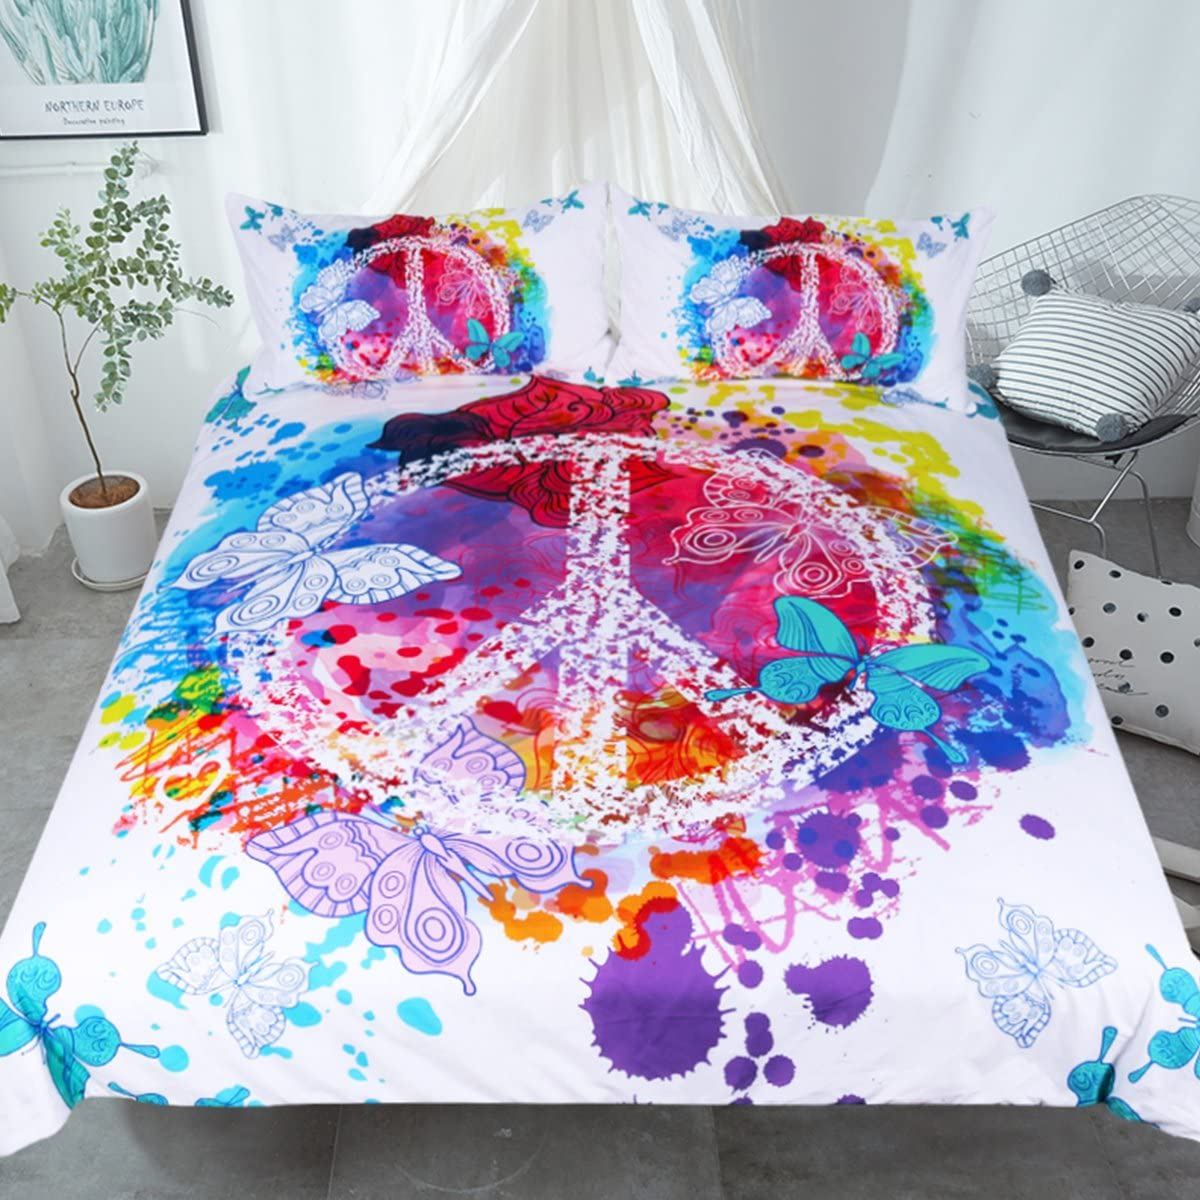 Sleepwish Hippie Psychedelic Butterfly Duvet Cover Peace Sign Bedding Boys Girls Watercolor Modern Colorful Art Bedspread (Queen)